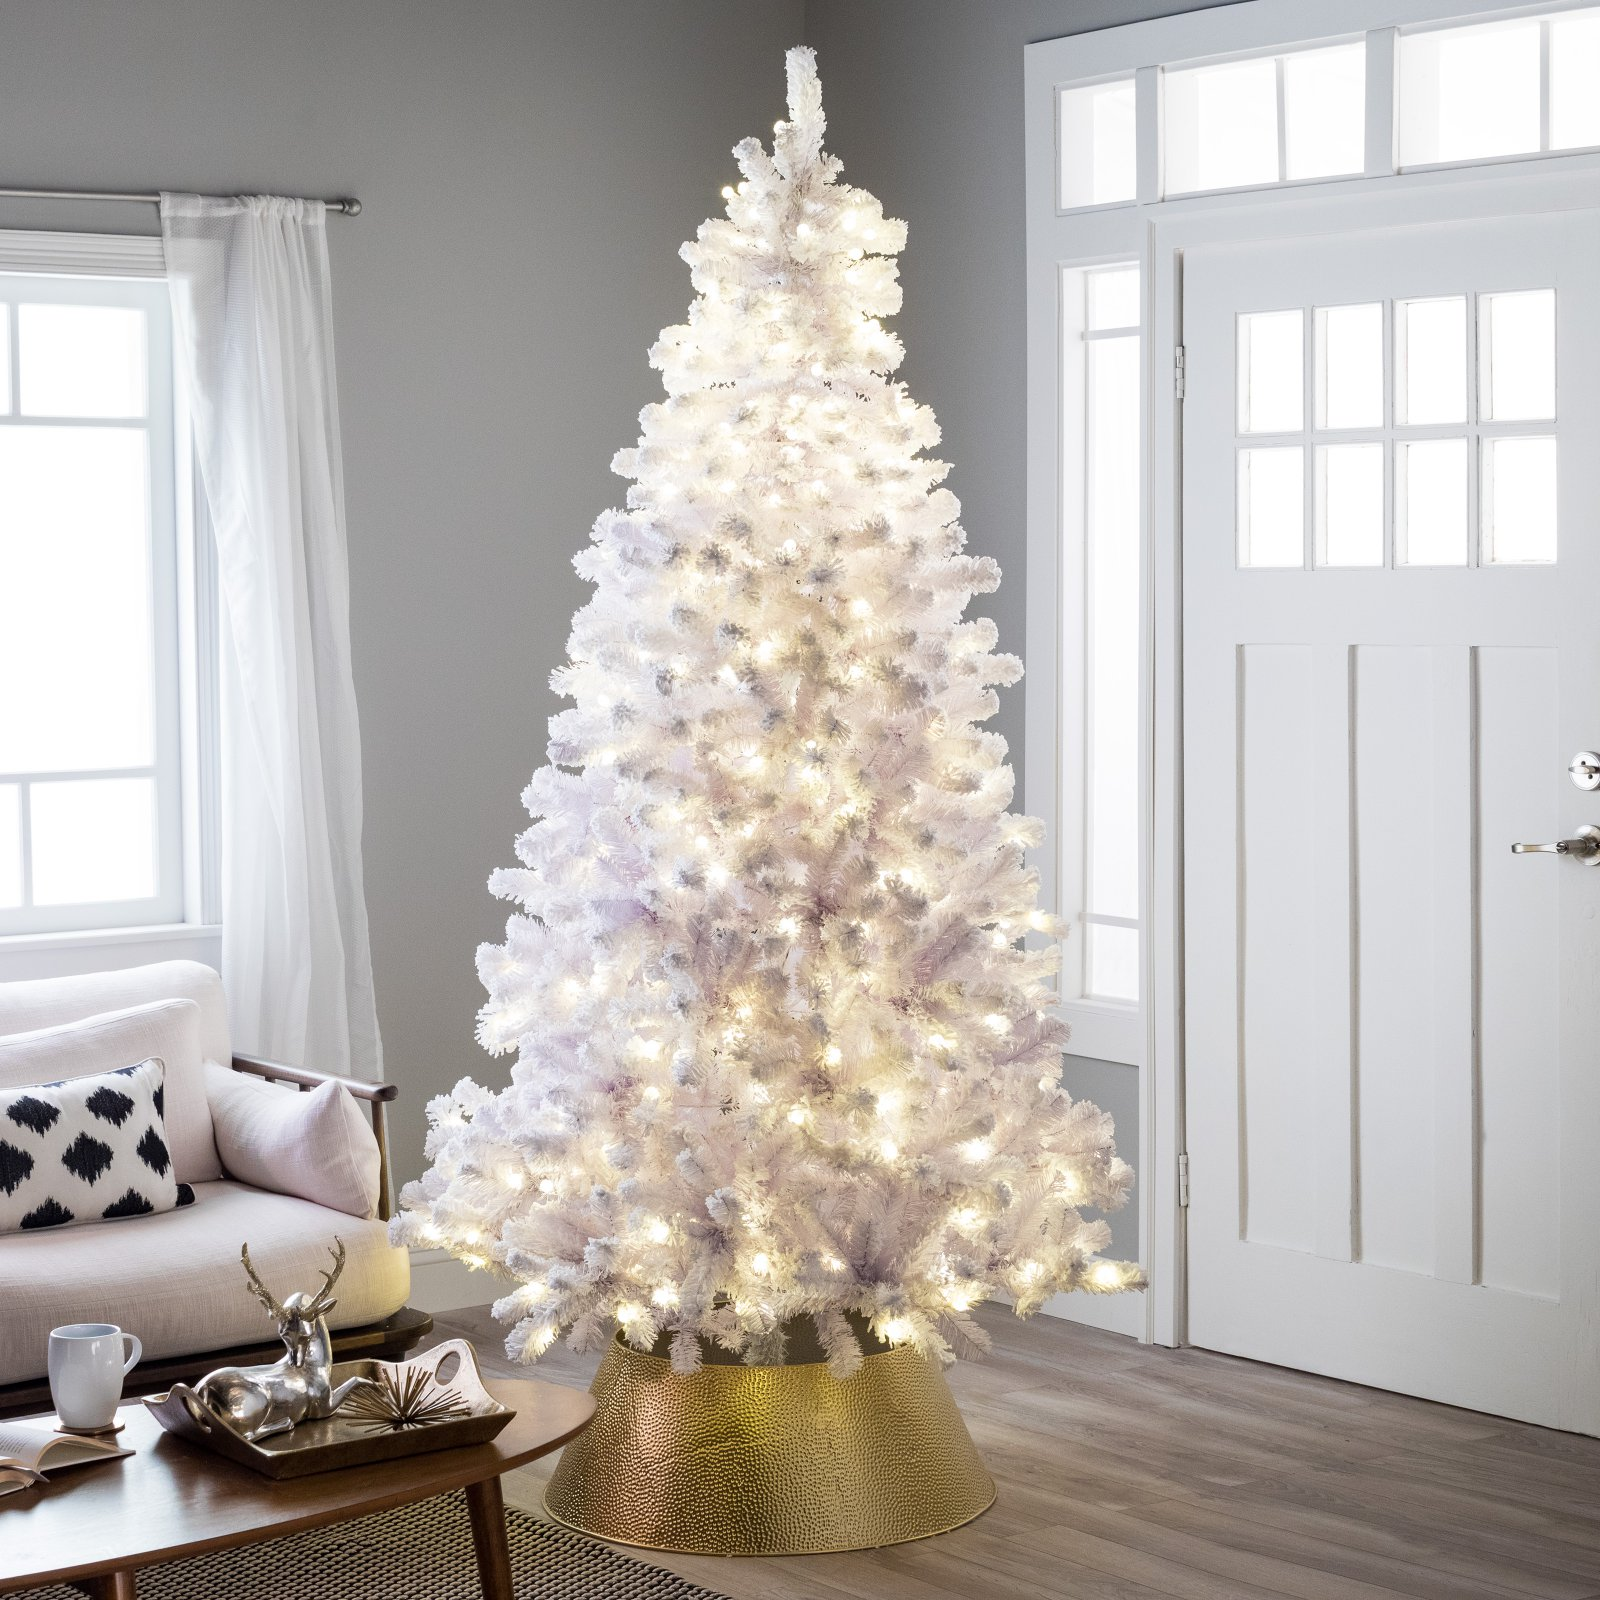 Belham Living 6.5ft Pre-Lit Artificial Christmas Tree with Clear Lights - White